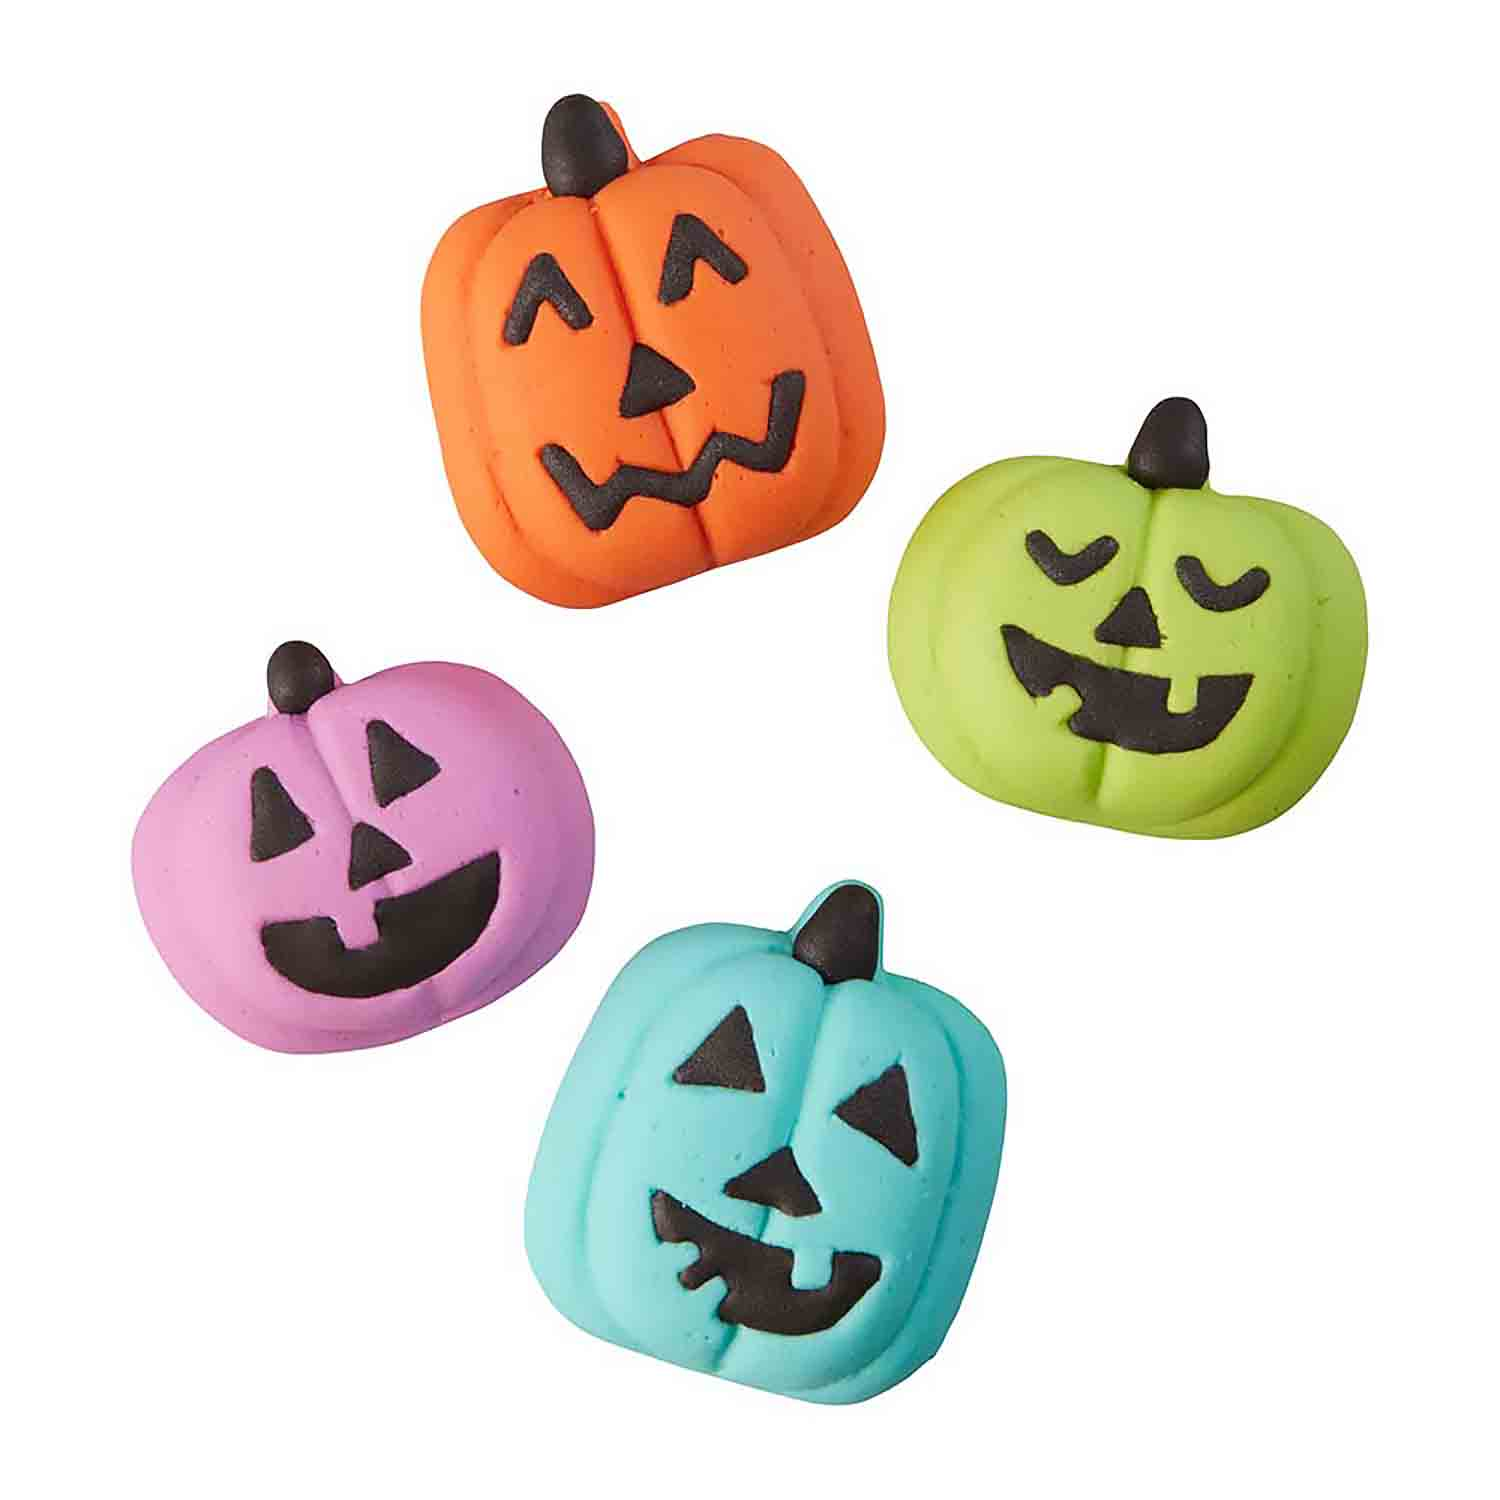 Pumpkin Royal Icing Decorations